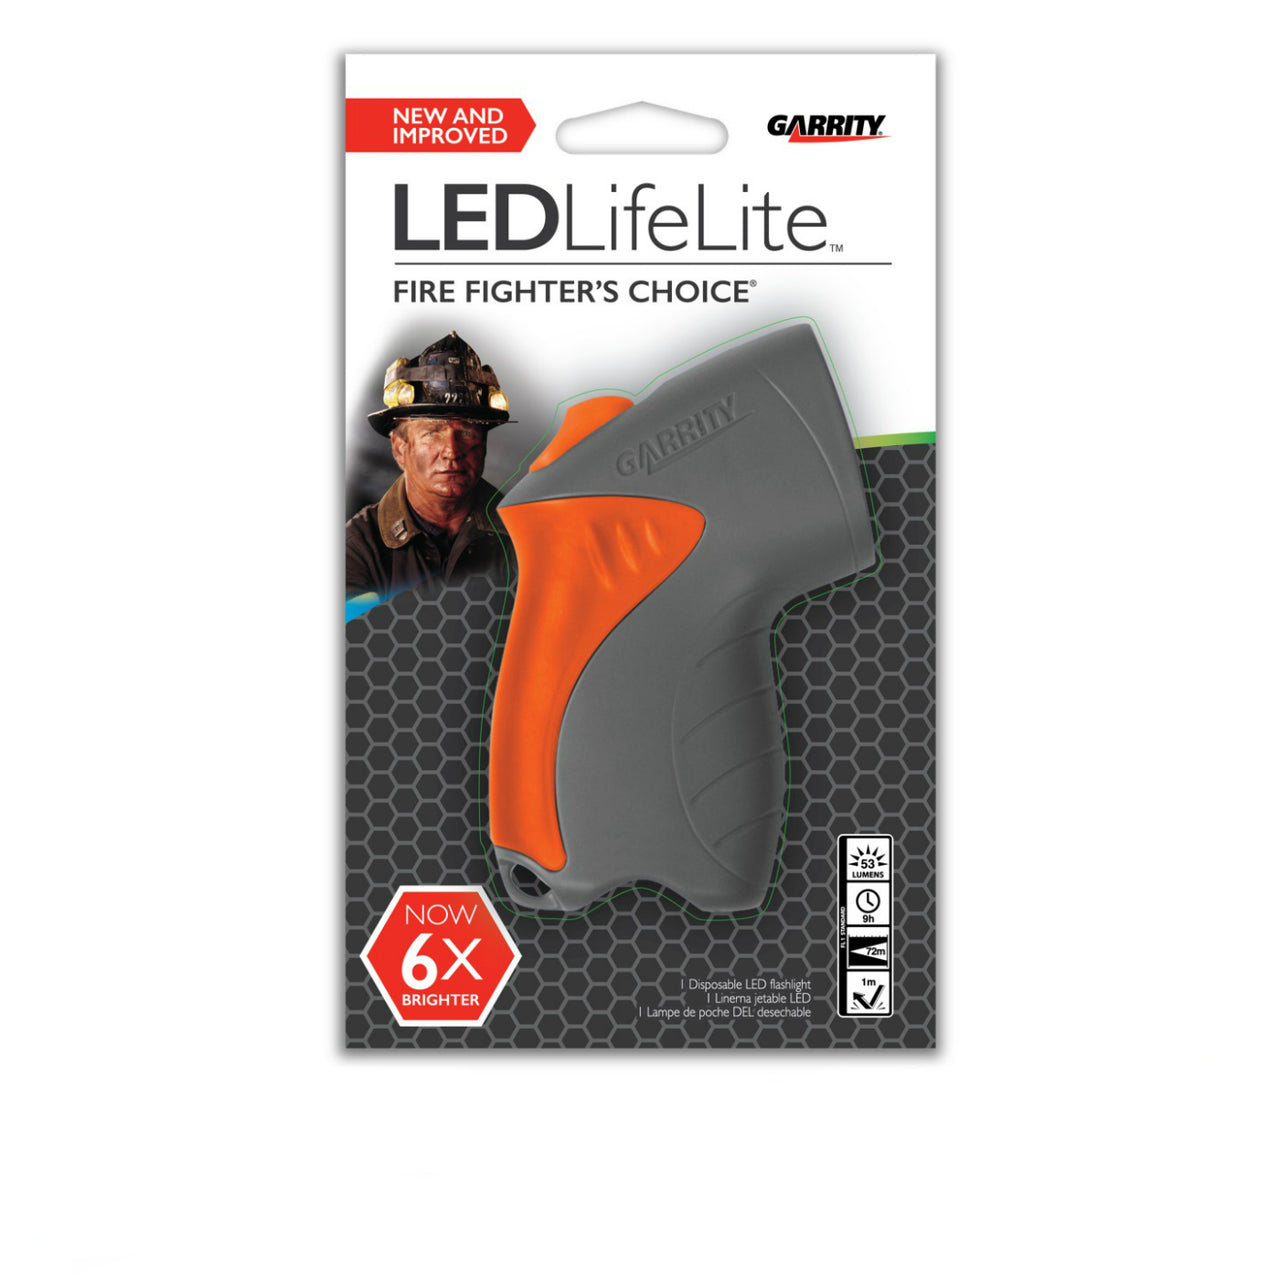 Garrity 65-015 LED LifeLite Disposable Flashlight, Assorted Colors, 53 Lumens